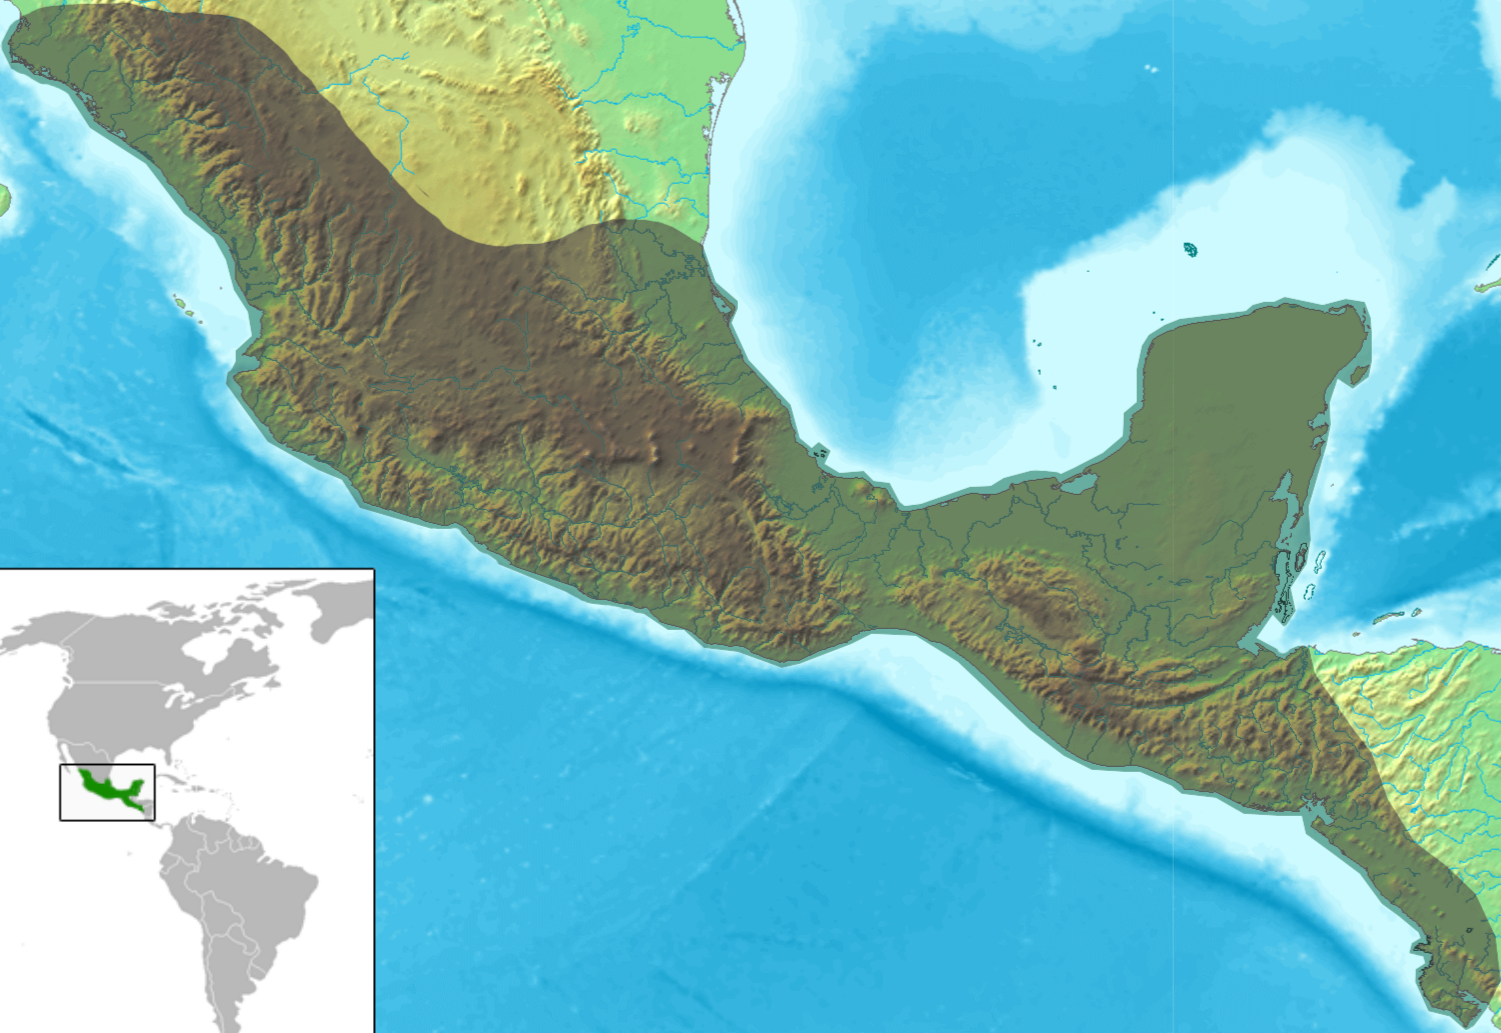 an overview of mesoamerica The term mesoamerica is derived from the greek and means middle america it refers to a geographical and cultural area which extends from central mexico down through central america, including the territory which is now made up of the countries of guatemala, belize, honduras and el salvador it is .